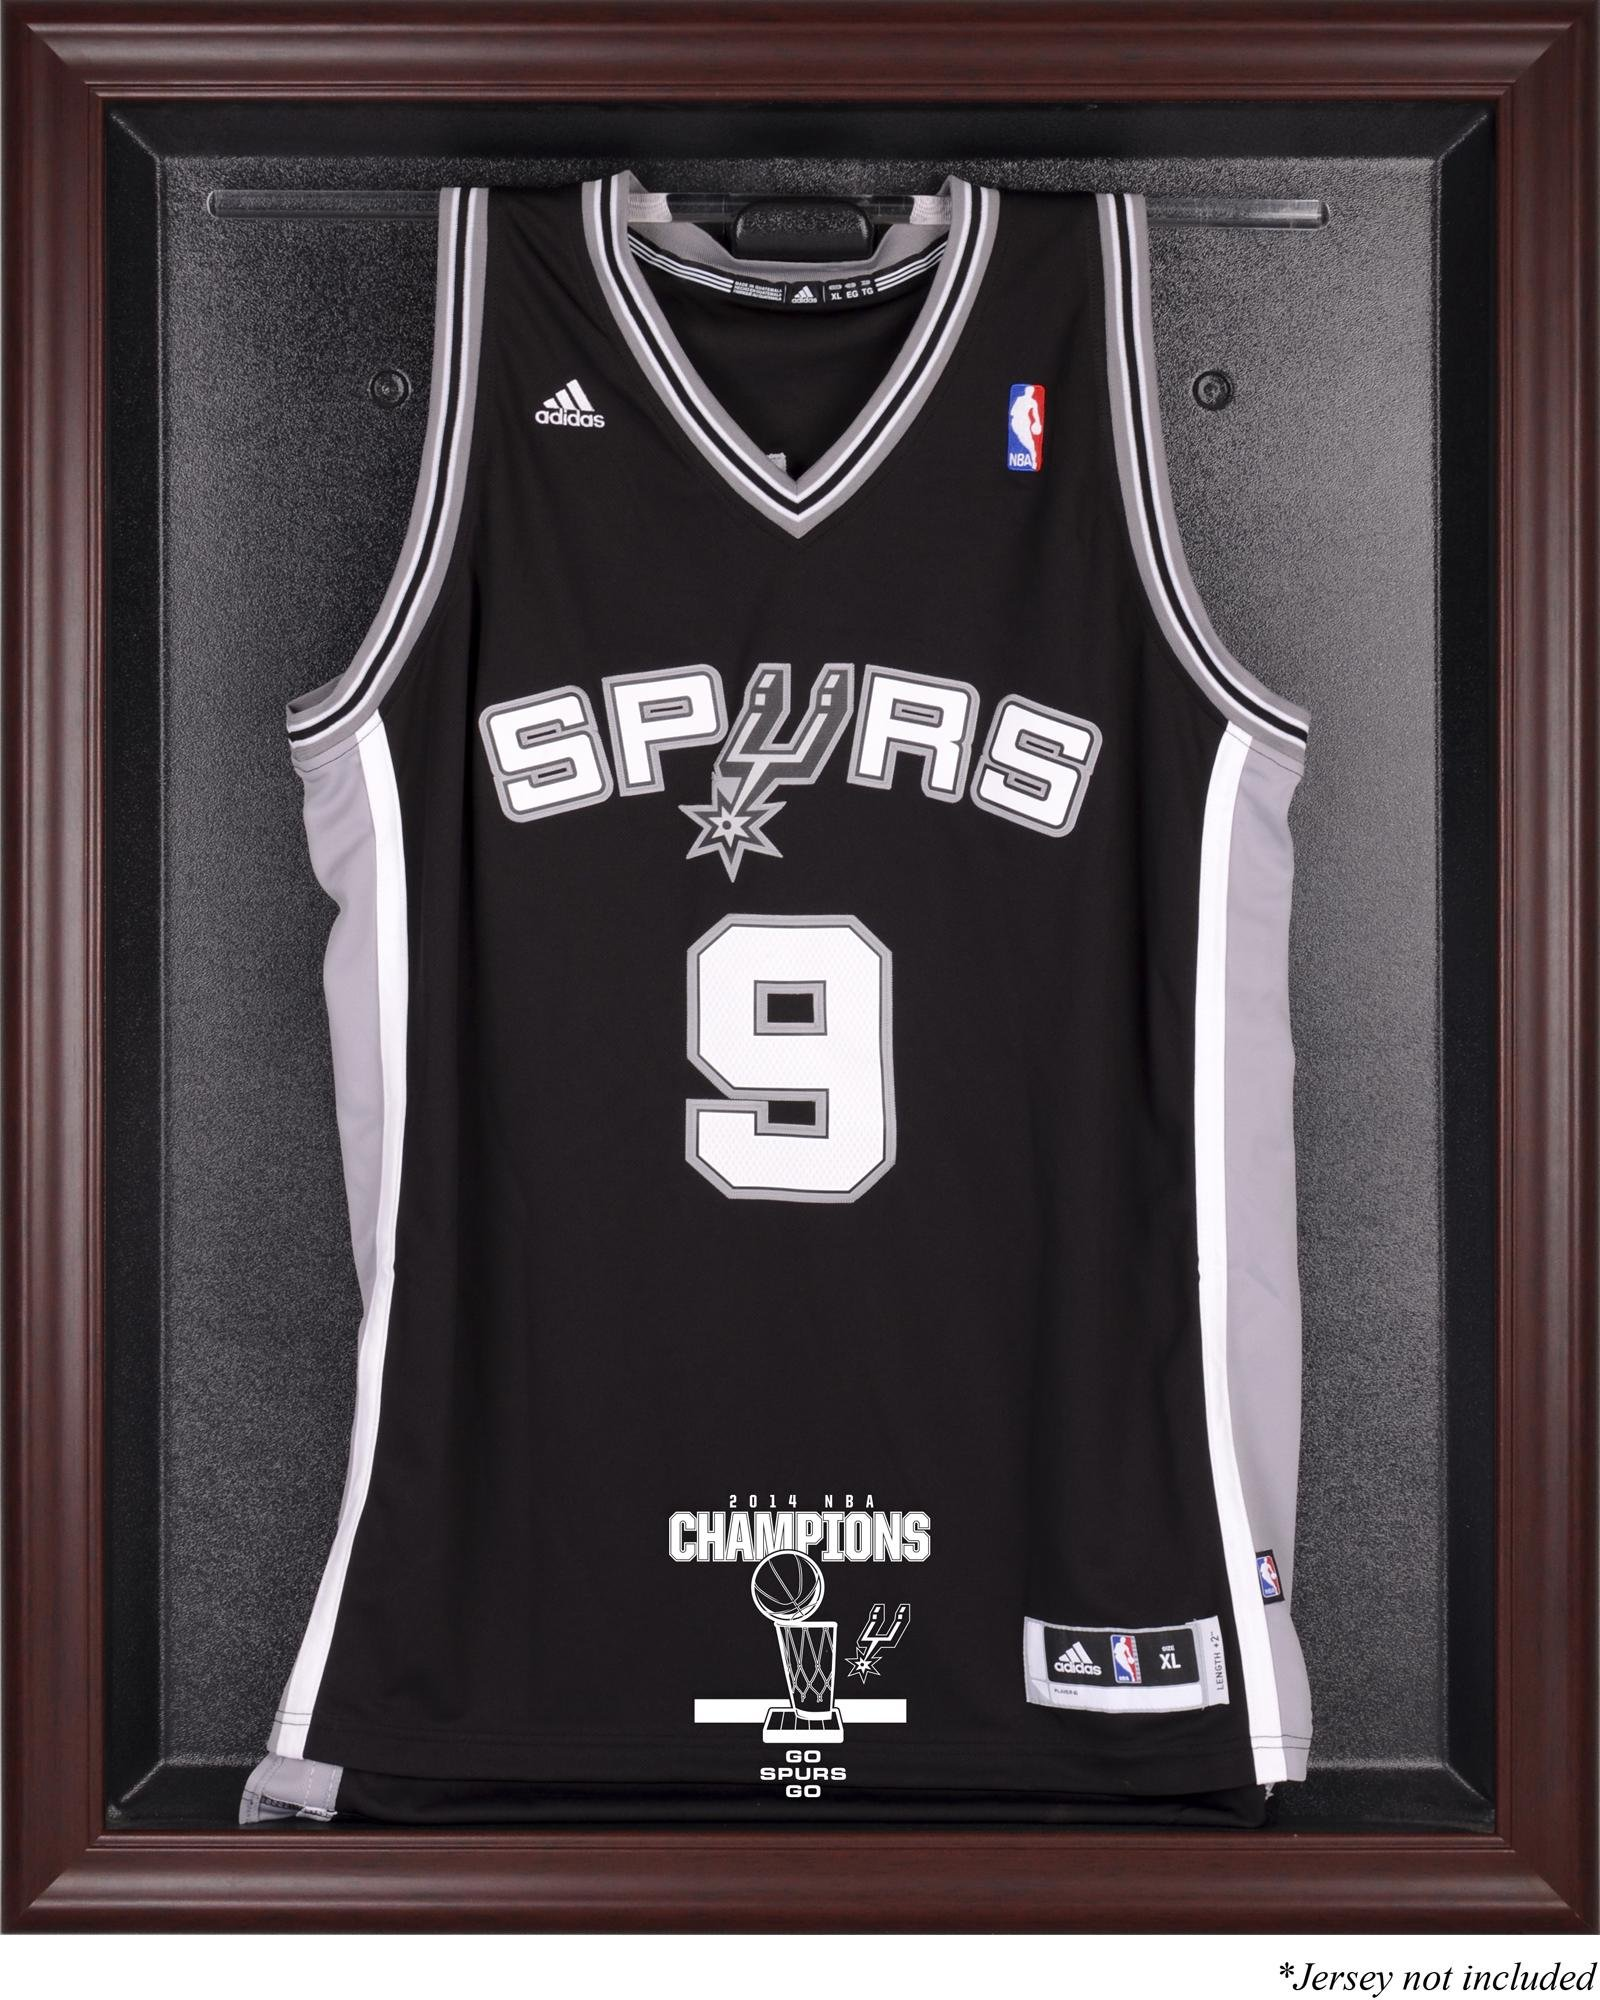 San Antonio Spurs 2014 NBA Champions Mahogany Framed Logo Jersey Case - Fanatics Authentic Certified by Sports Memorabilia